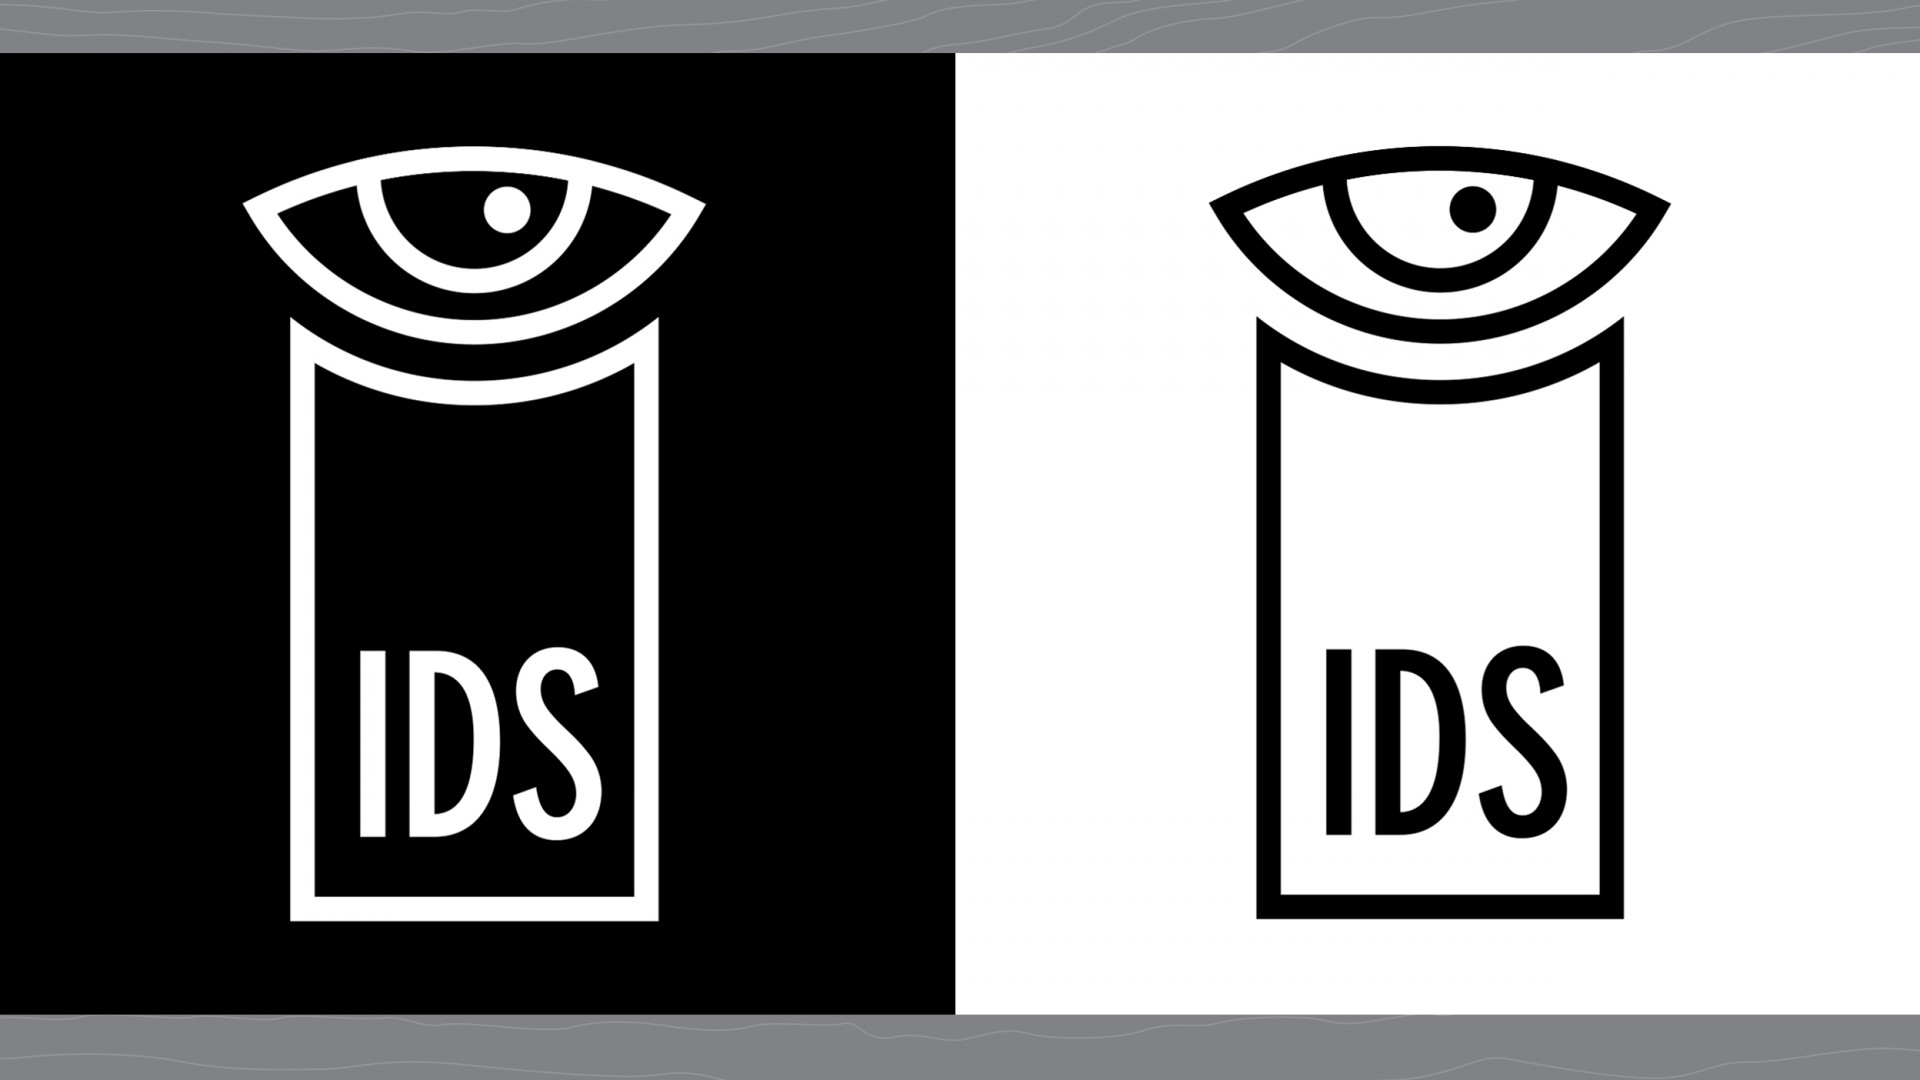 Proposed new primary brand marks for IDS.